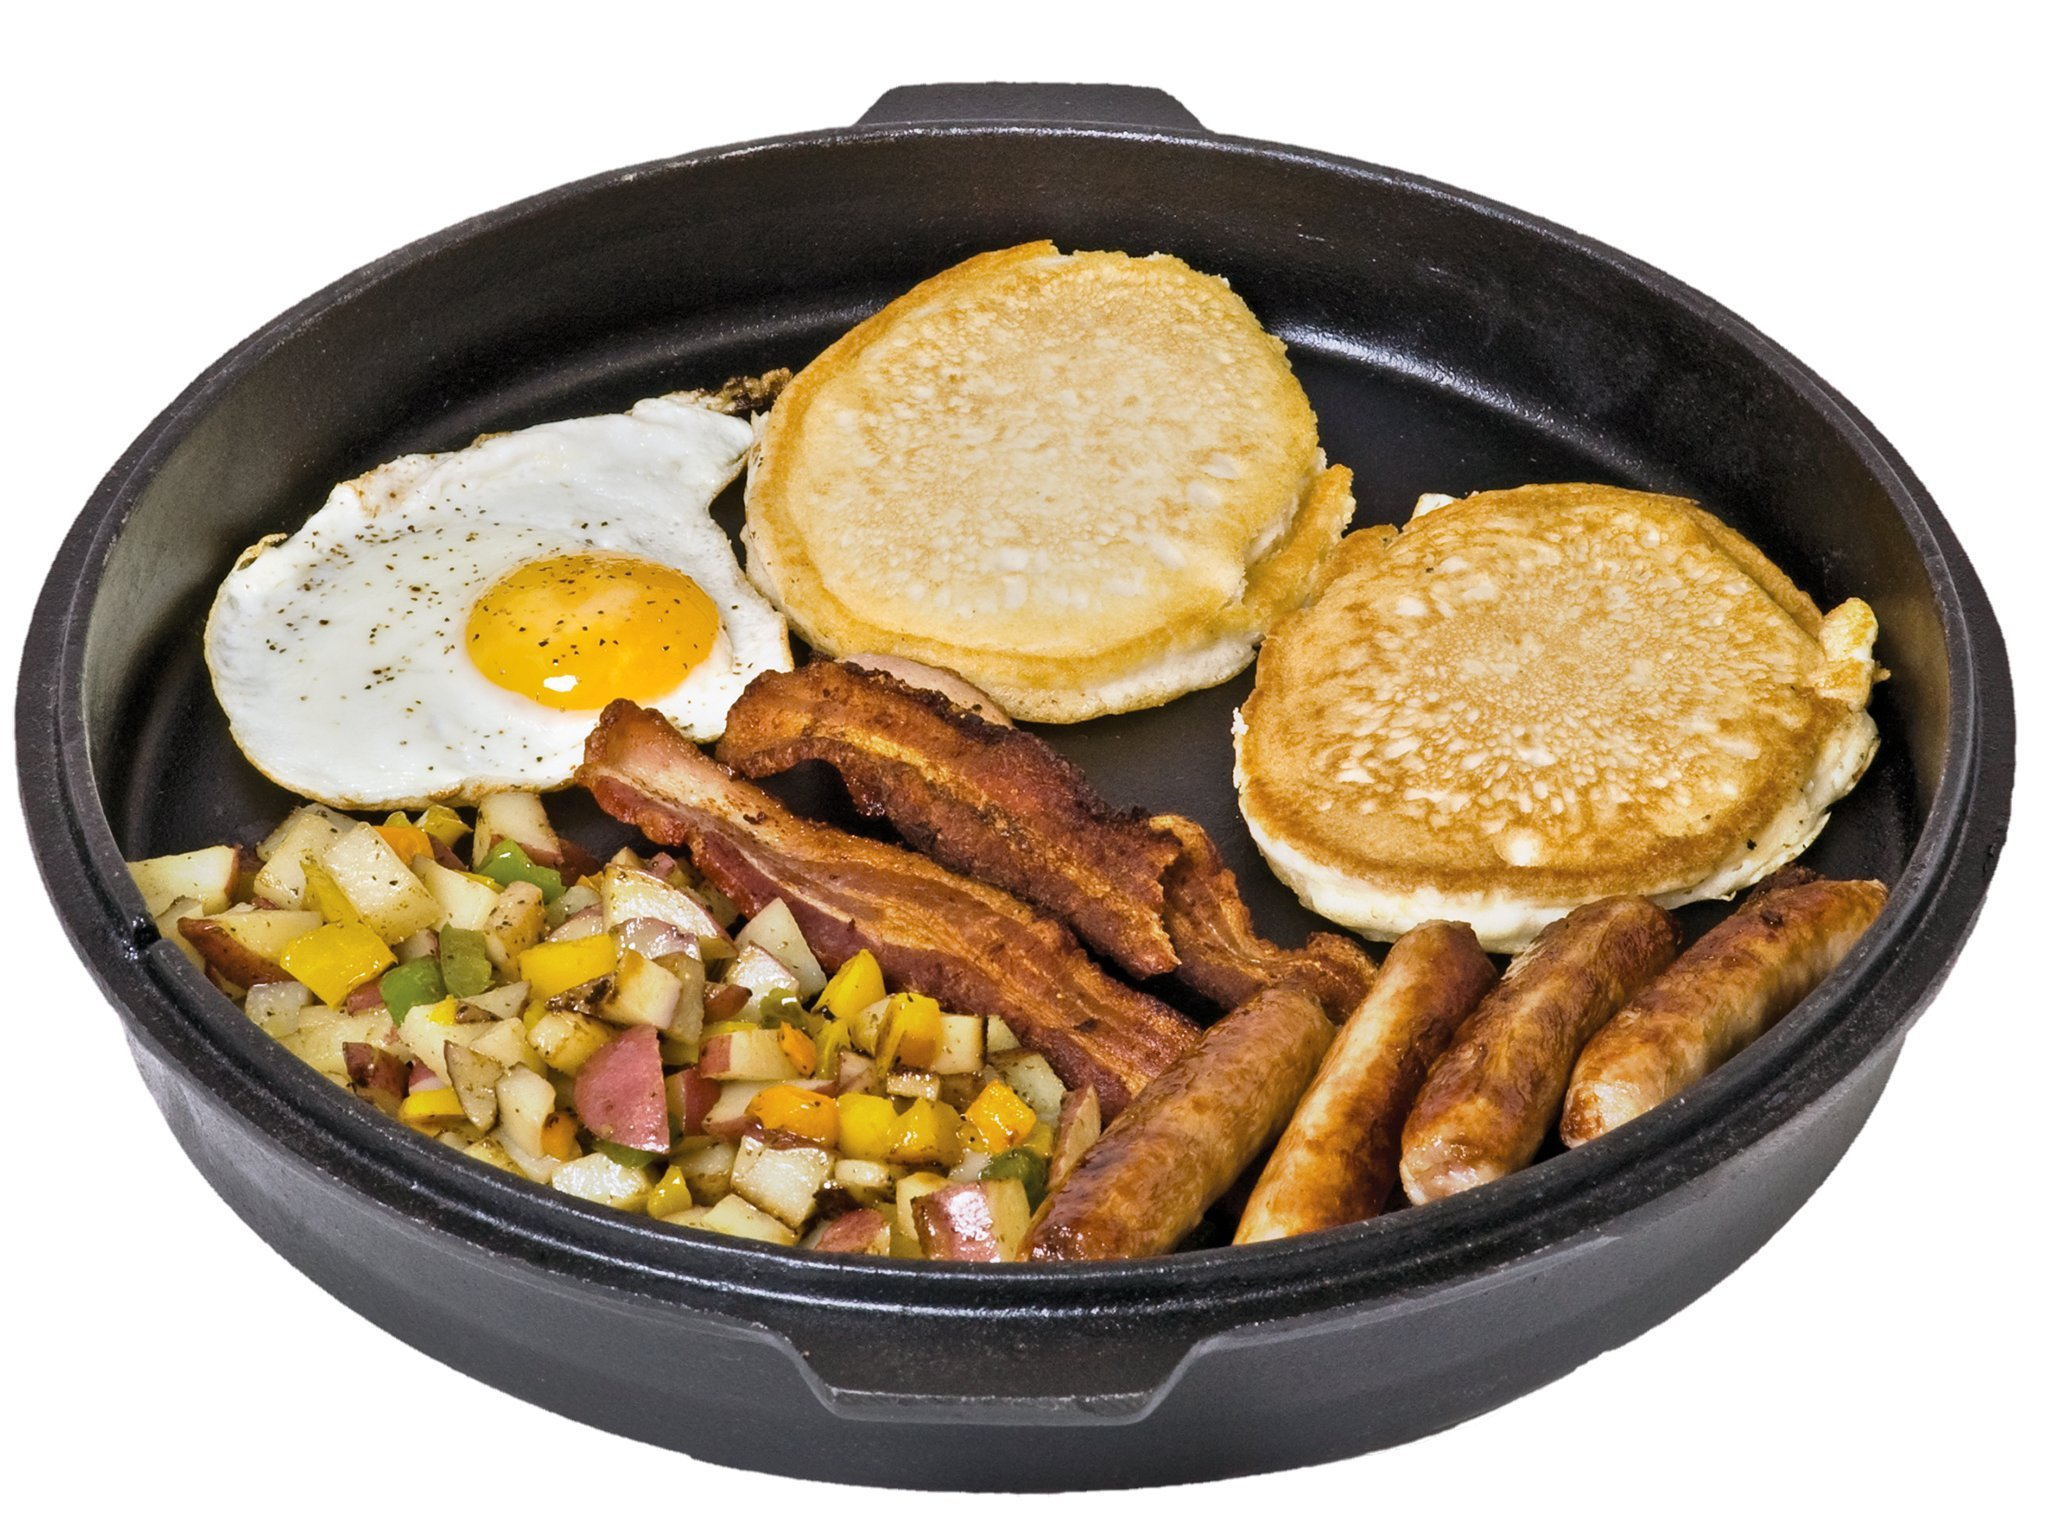 Camp Chef DO10 -  6 Quart Dutch Oven Pre-Seasoned Cast Iron with Lift Tool and Lid